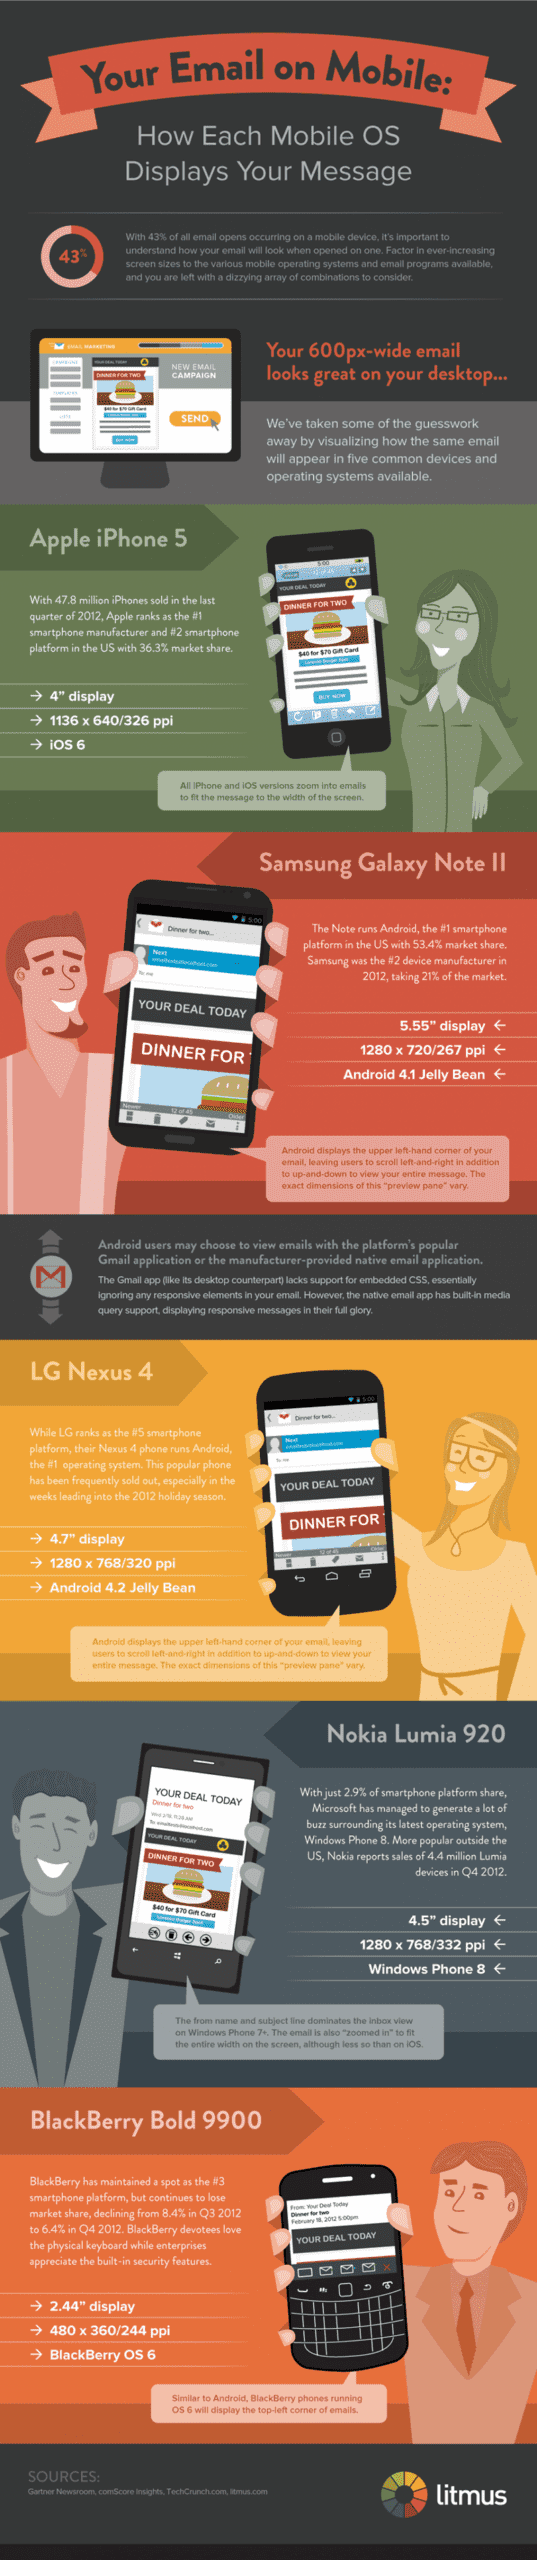 Litmus-Your-Email-on-Mobile